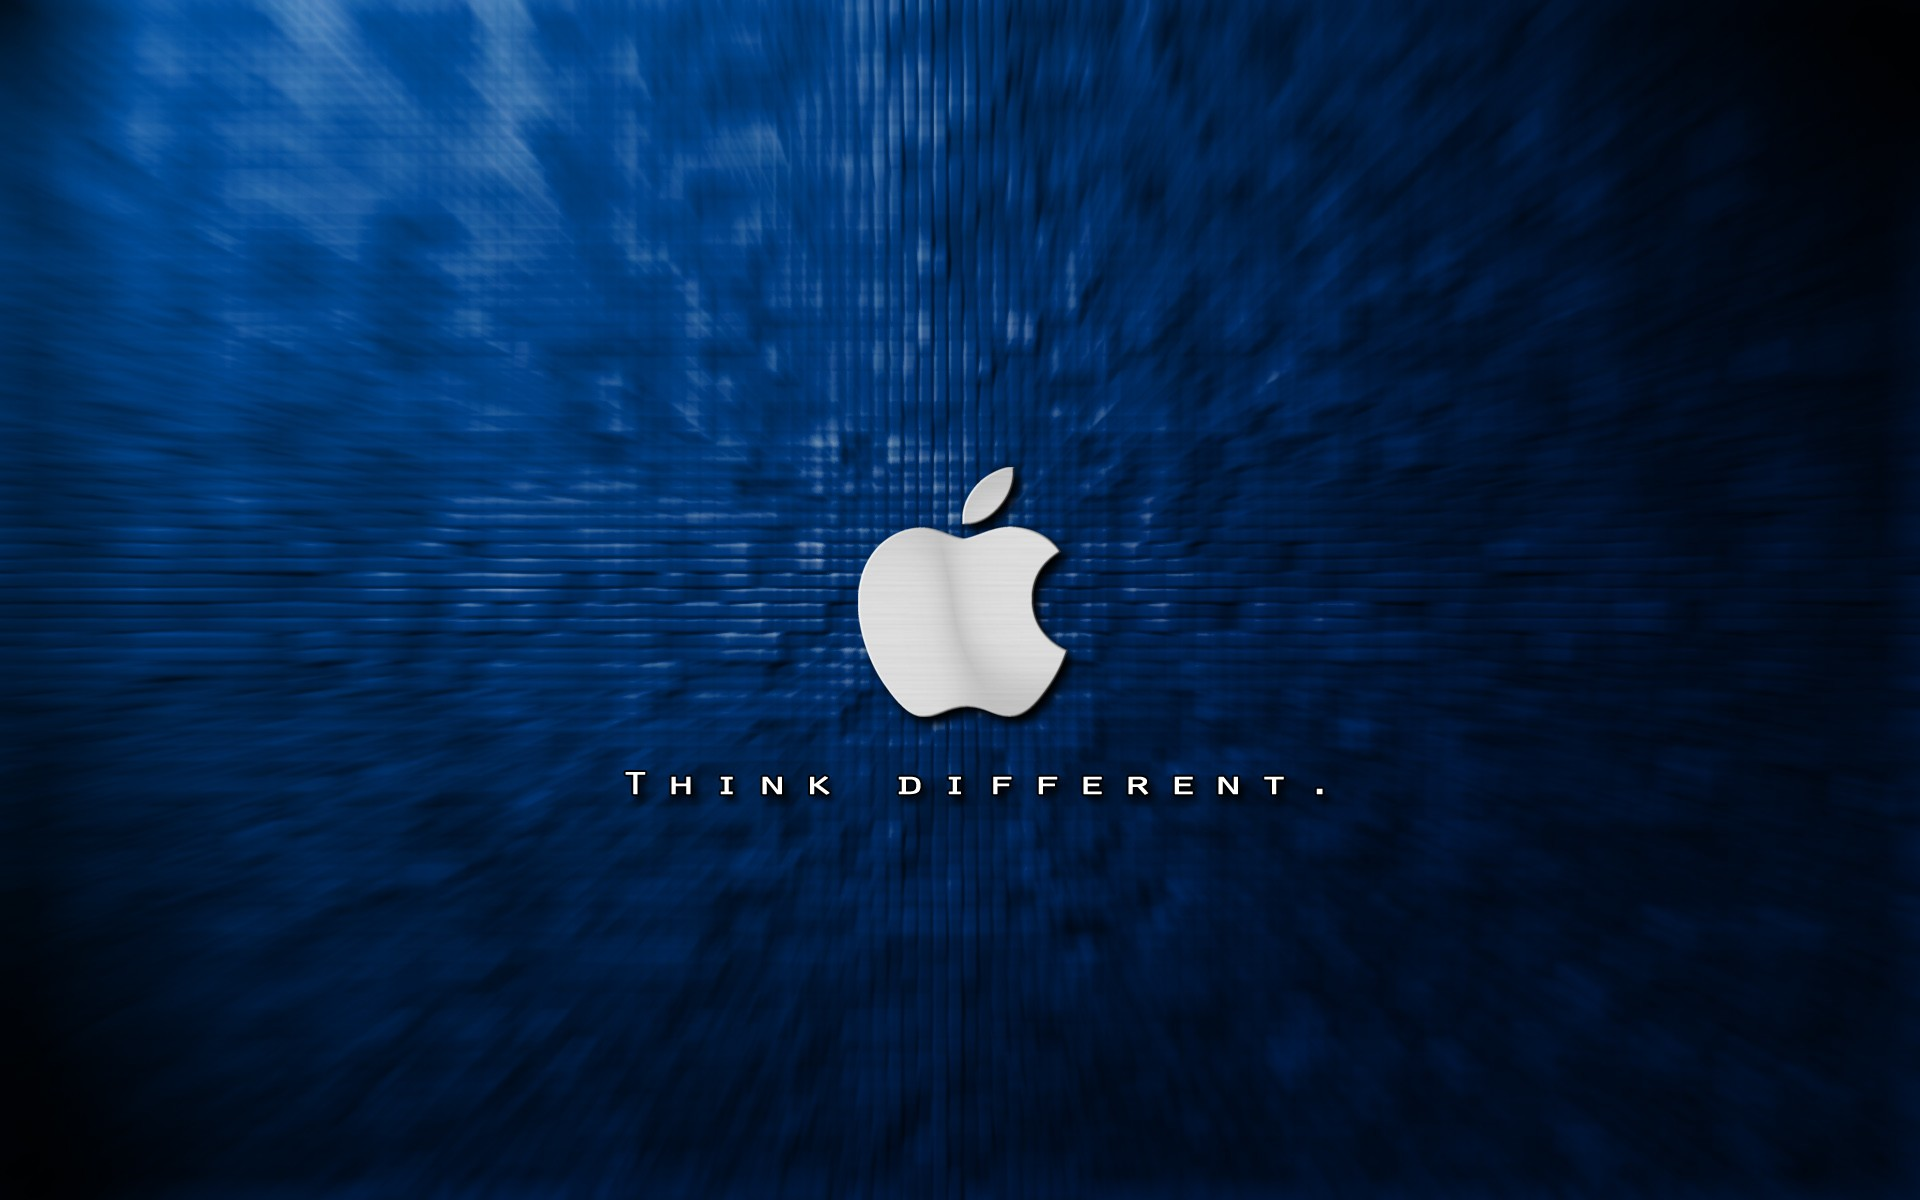 Apple Logo Wallpapers Blue HD Wallpaper of Logo   hdwallpaper2013com 1920x1200